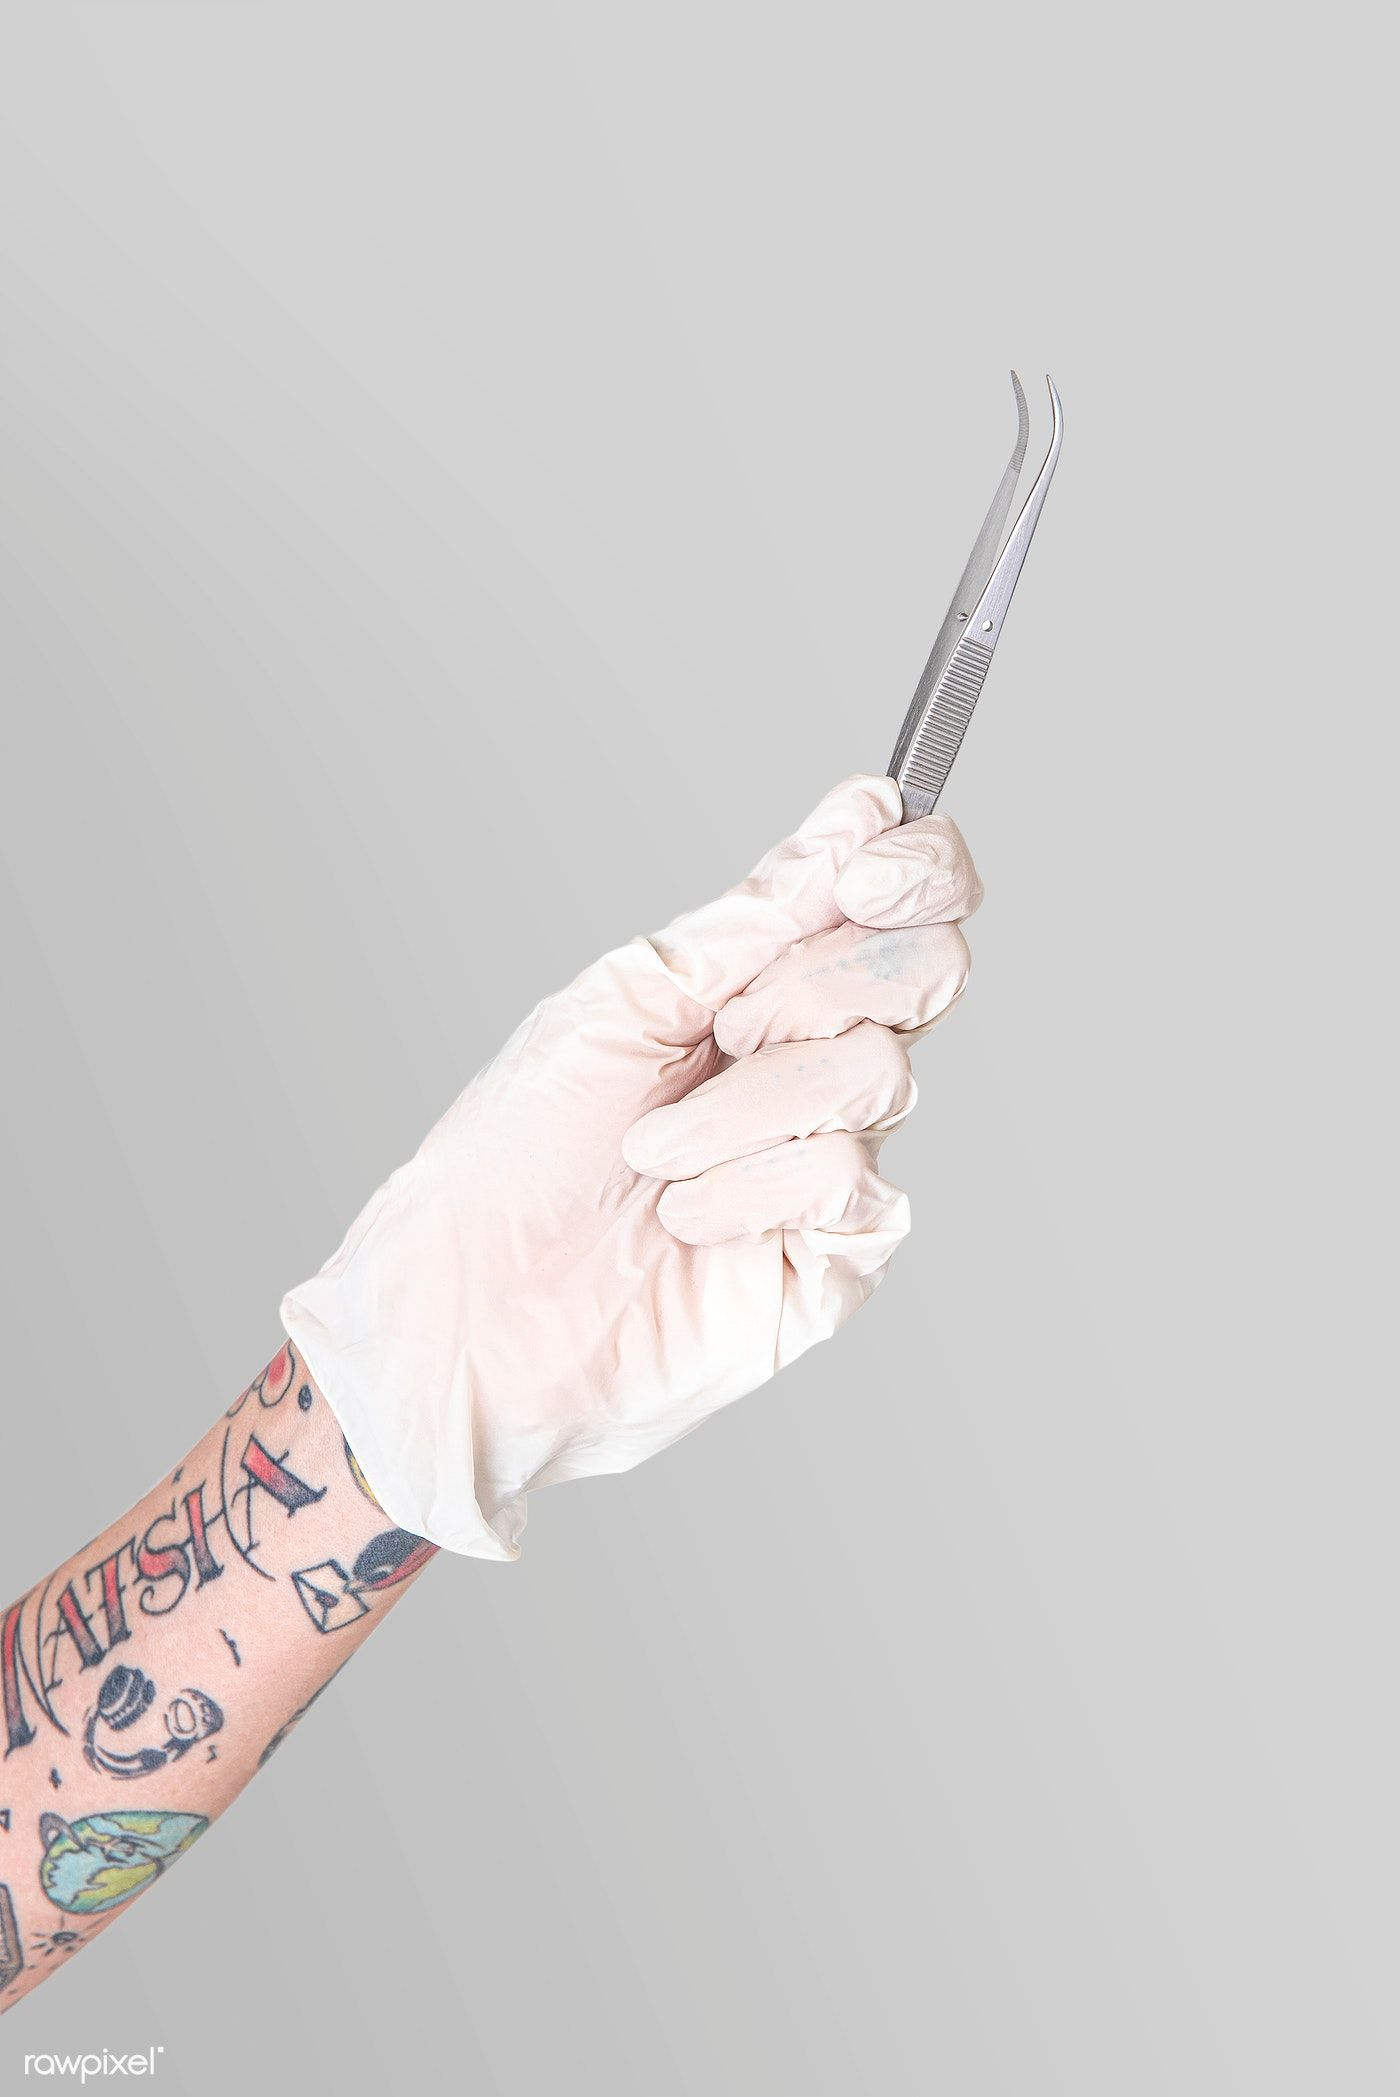 Download Premium Psd Of Tattooed Hand In A White Glove Holding A Curved ในป 2020